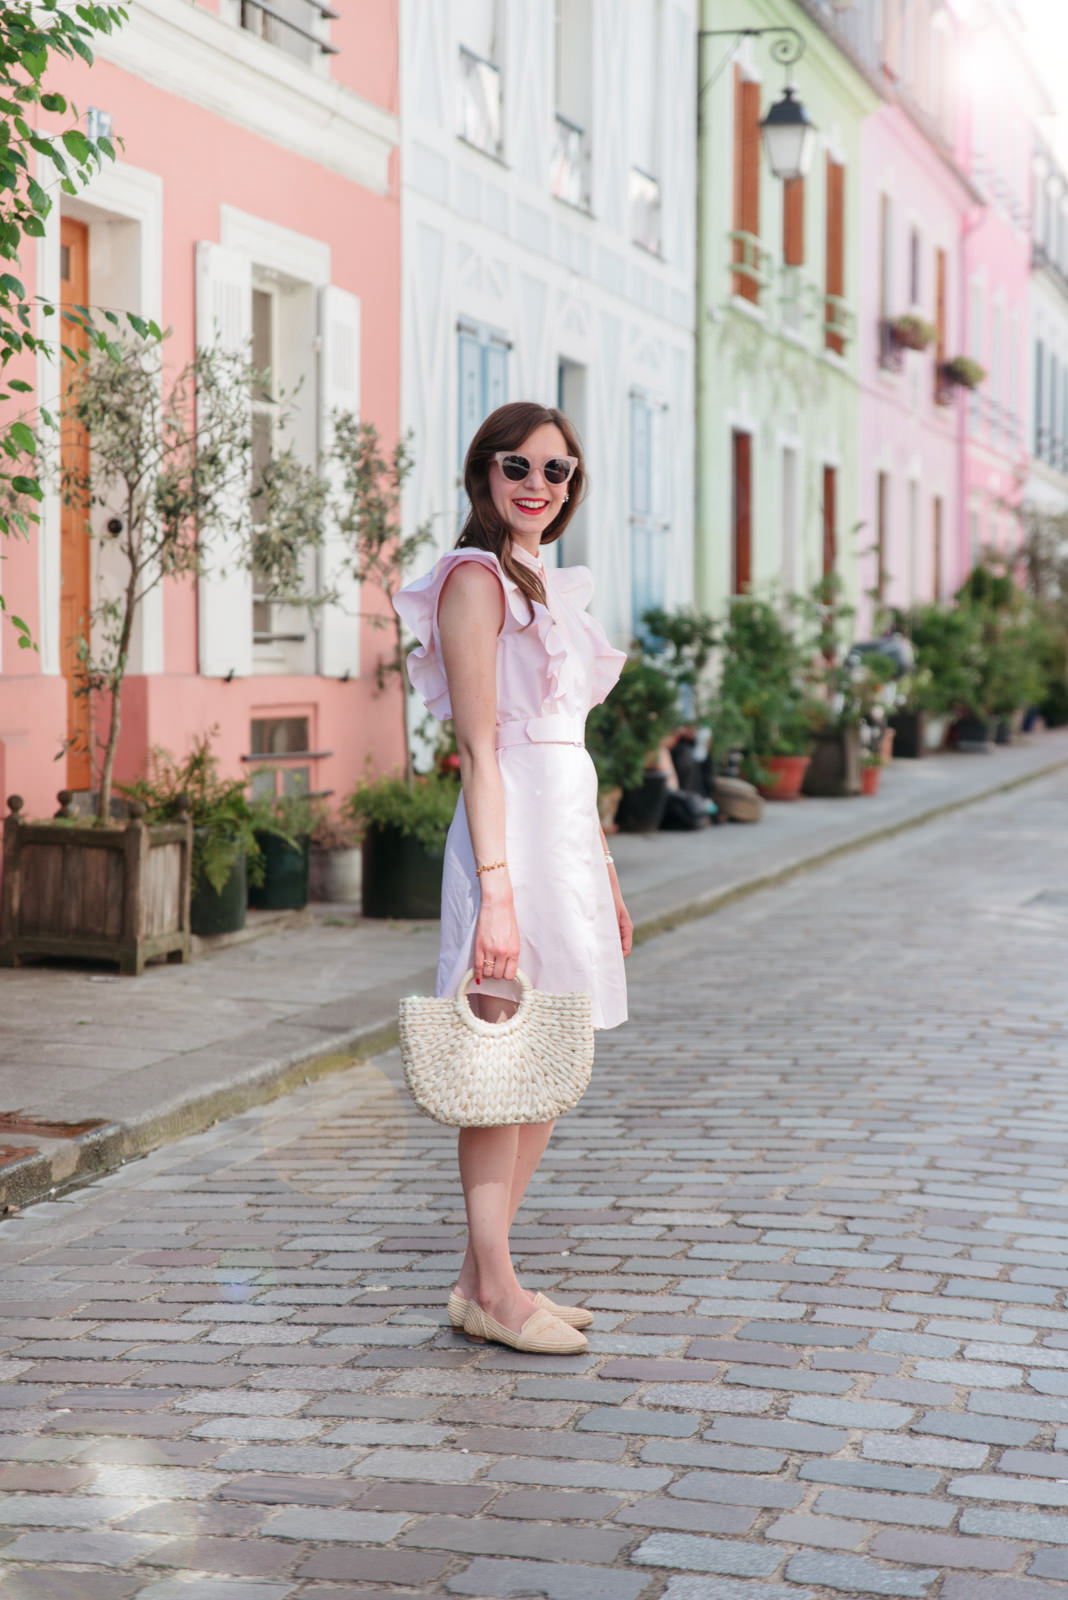 Robe claudie pierlot volants en soldes mode and the city - Daphne mode and the city ...